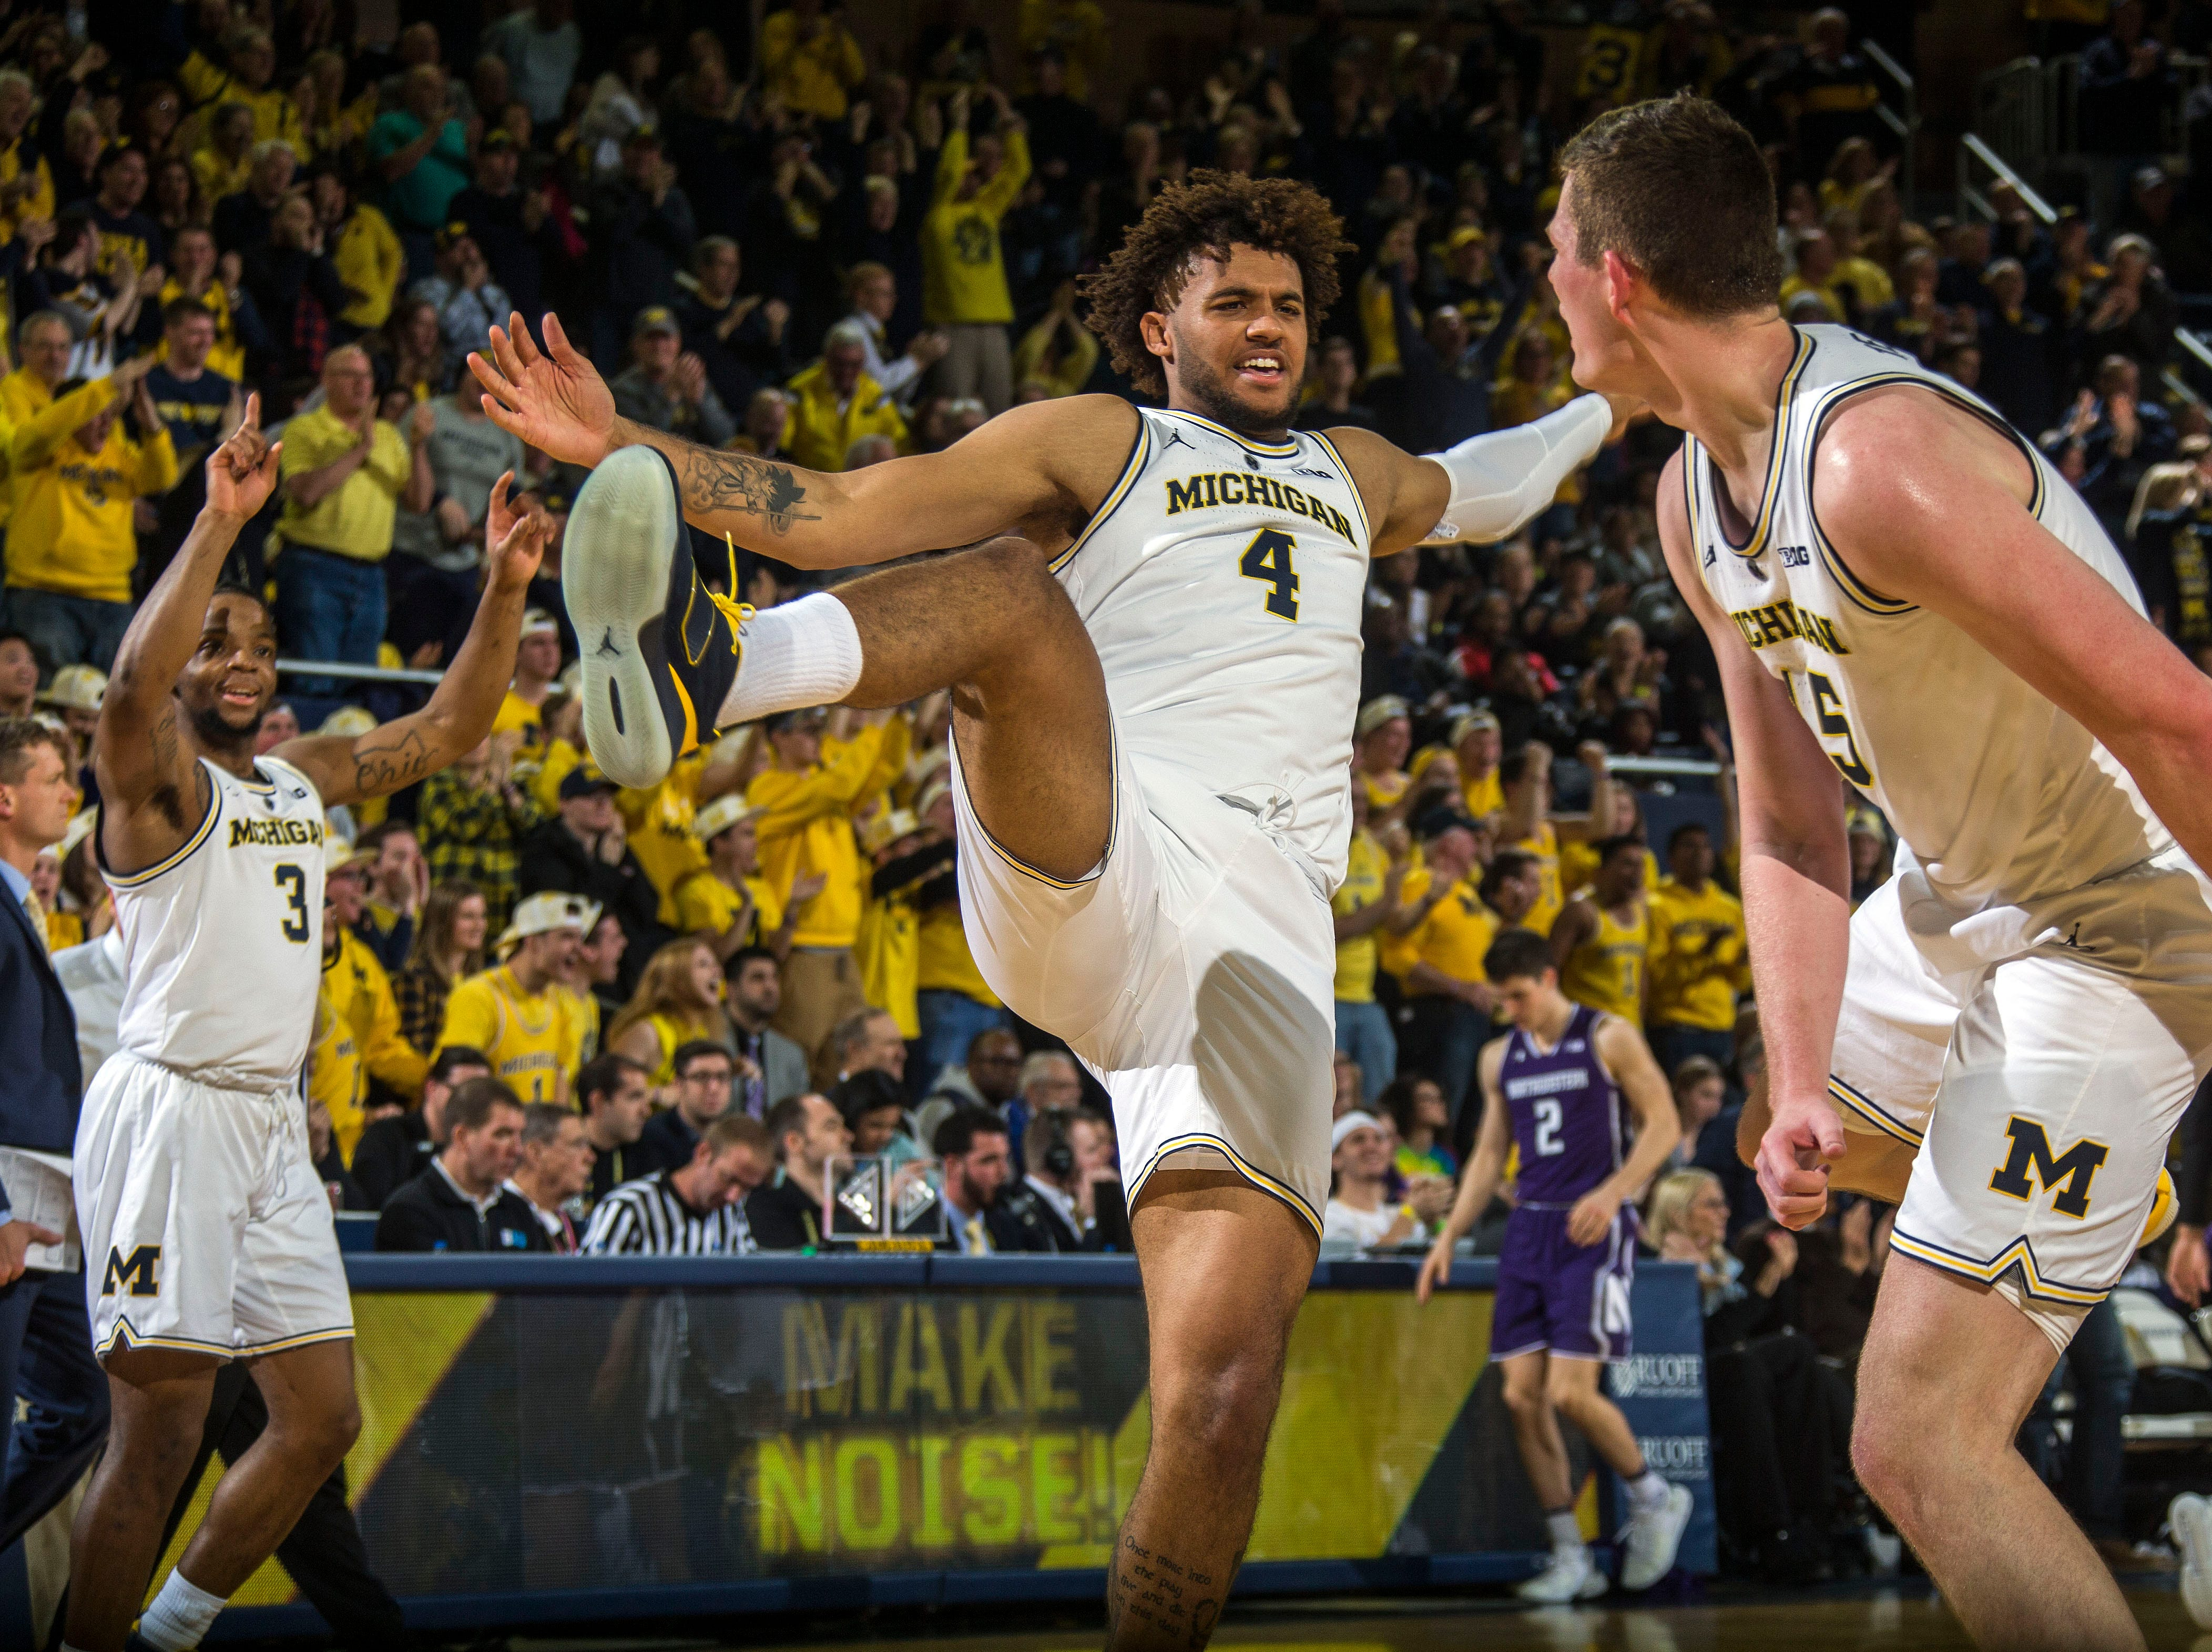 Michigan guard Zavier Simpson (3) and forward Isaiah Livers (4) celebrate with center Jon Teske, right, after Teske made consecutive three-point baskets in the first half of an NCAA college basketball game against Northwestern at Crisler Center in Ann Arbor, Mich., Sunday, Jan. 13, 2019. (AP Photo/Tony Ding)